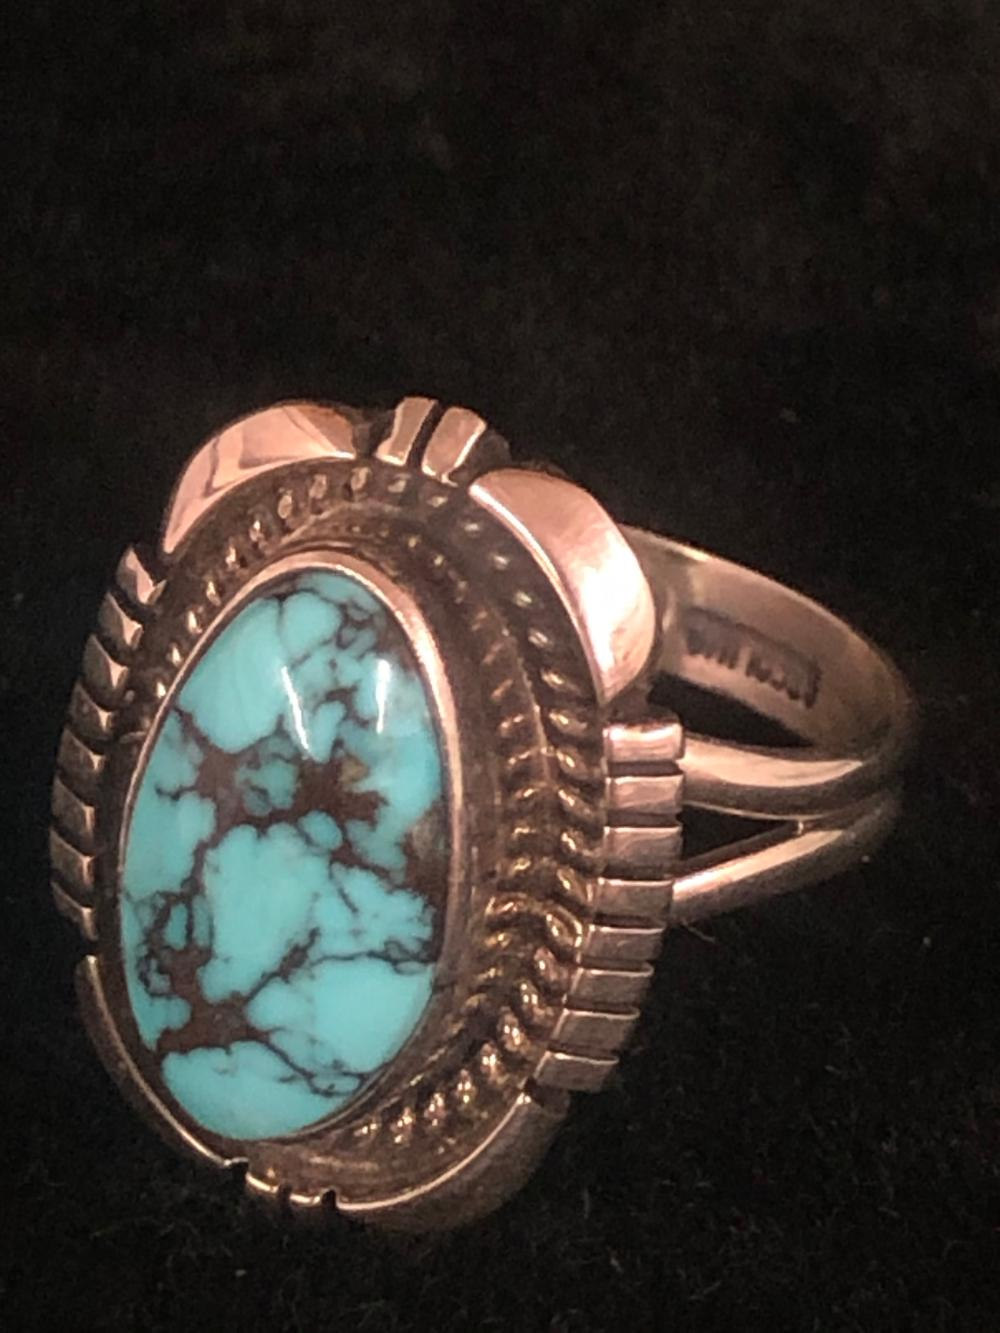 Candellaria turquoise stone sterling silver ring